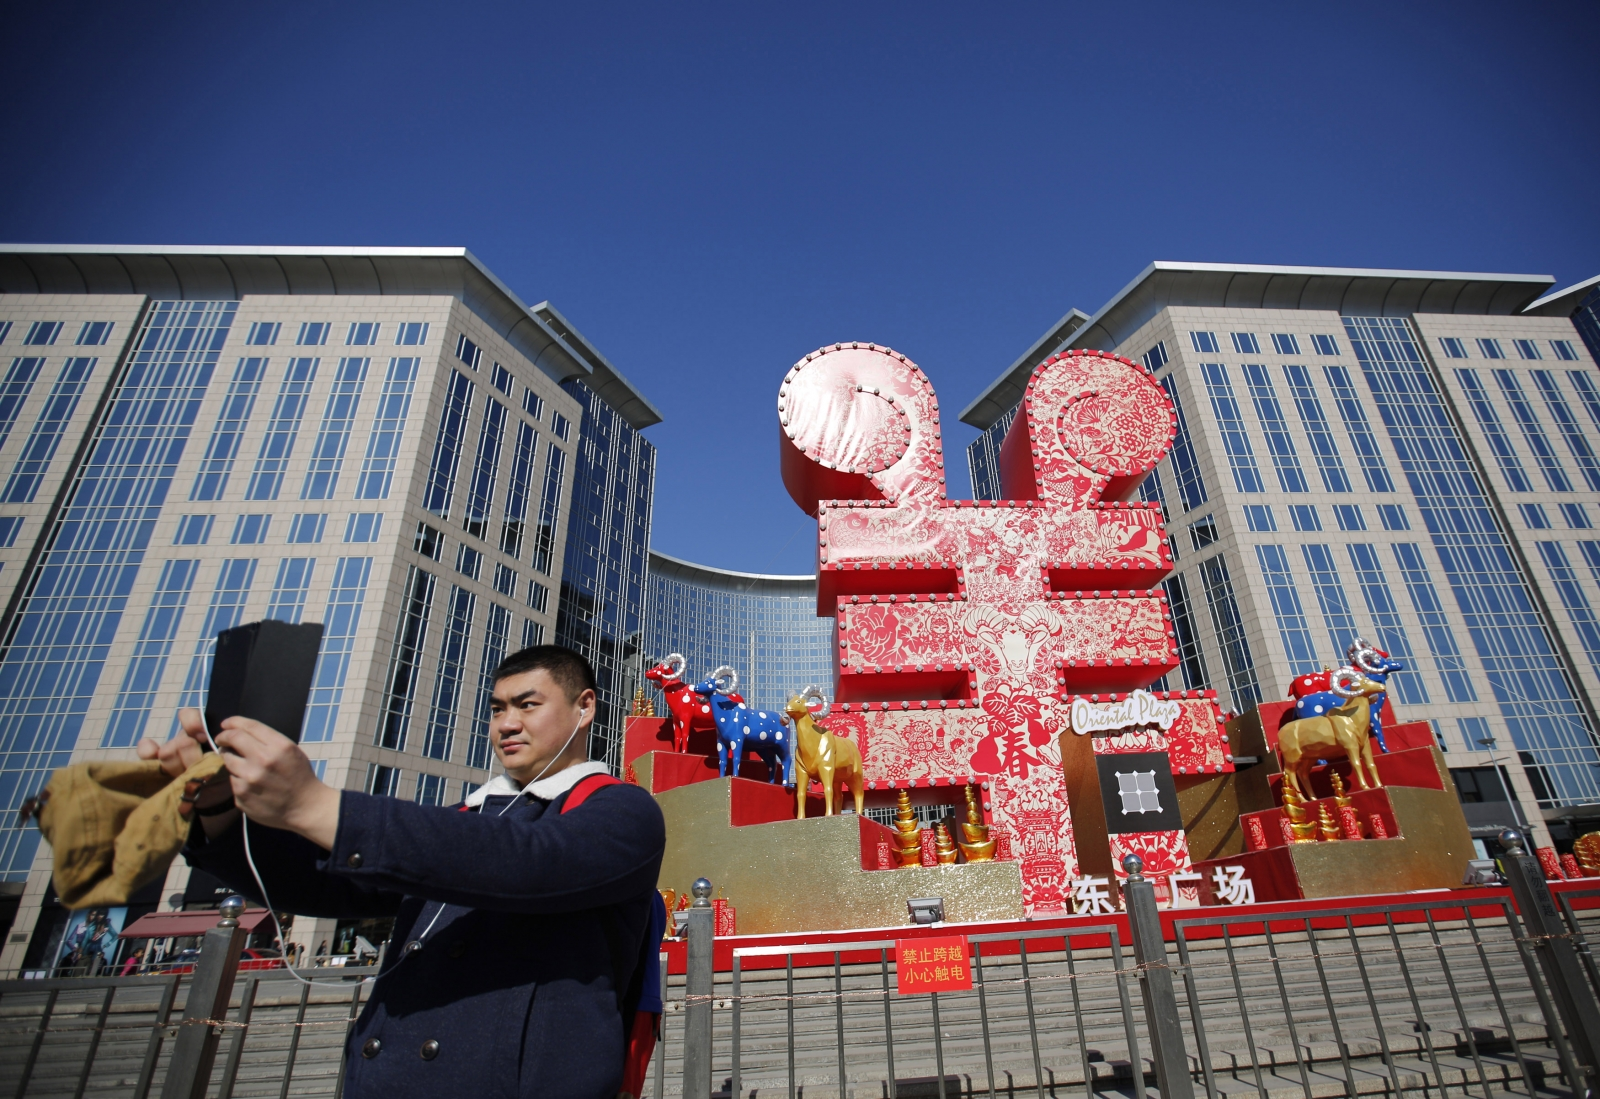 Wishing you a Happy Year of the Goat! Here's a look at what's predicted for you this year